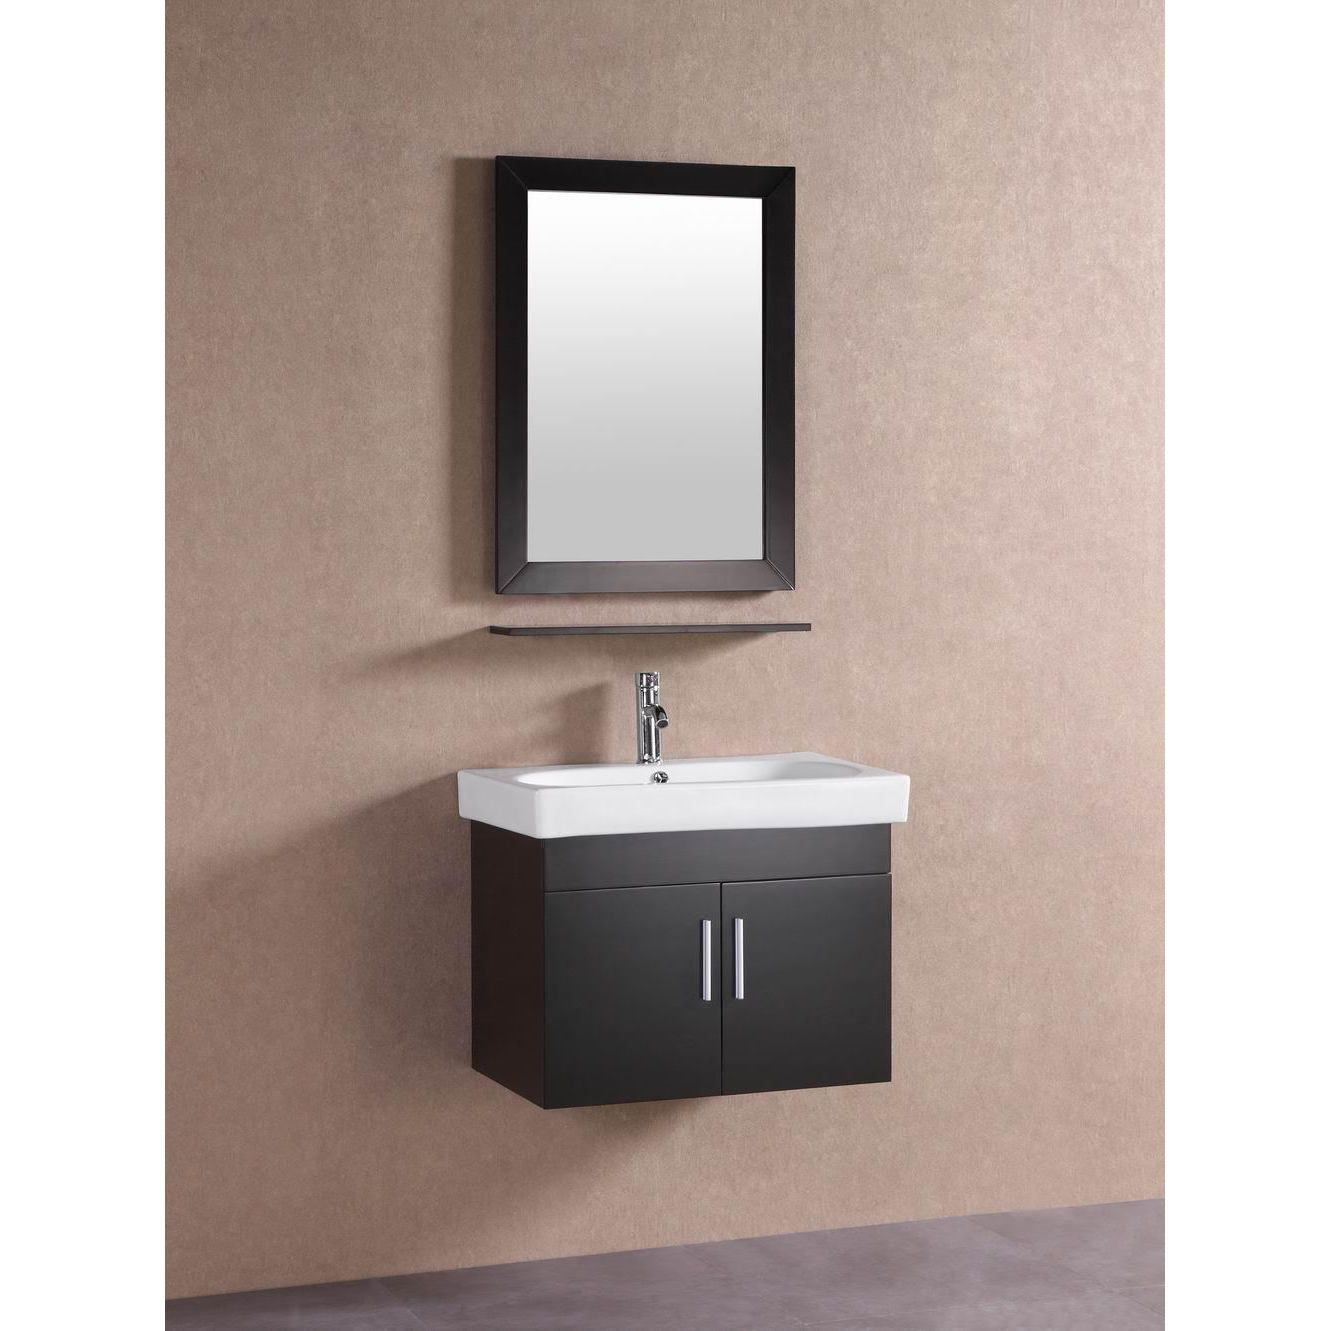 Belvedere modern espresso brown 28 inch floating Floating bathroom vanity